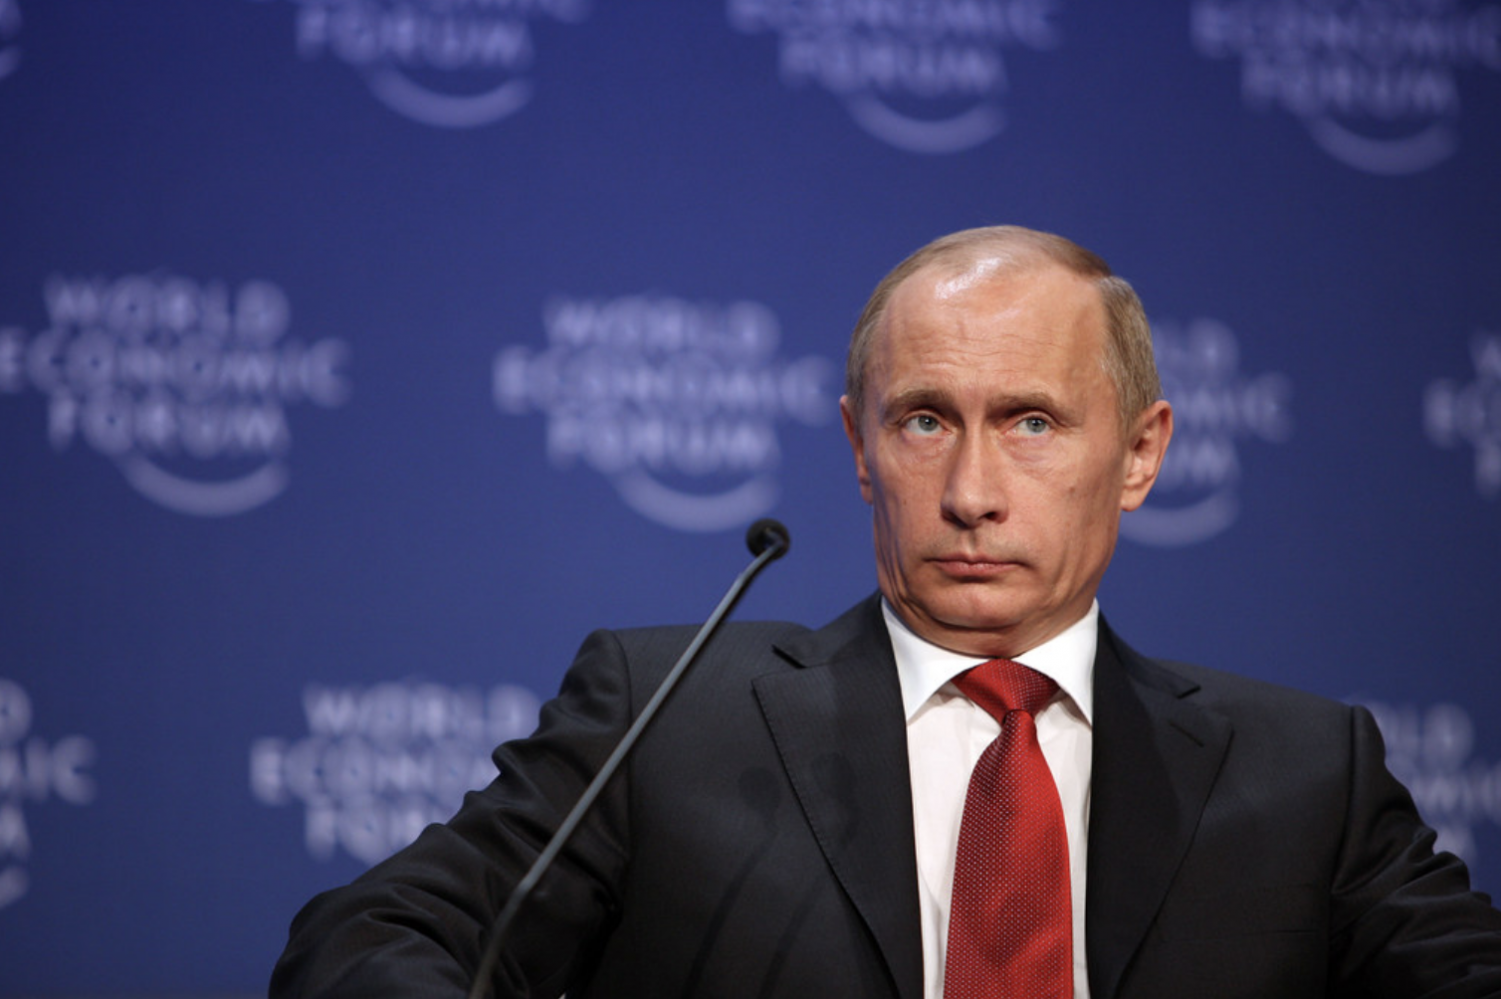 Putin's National Referendum: The Ban of Gay Marriage